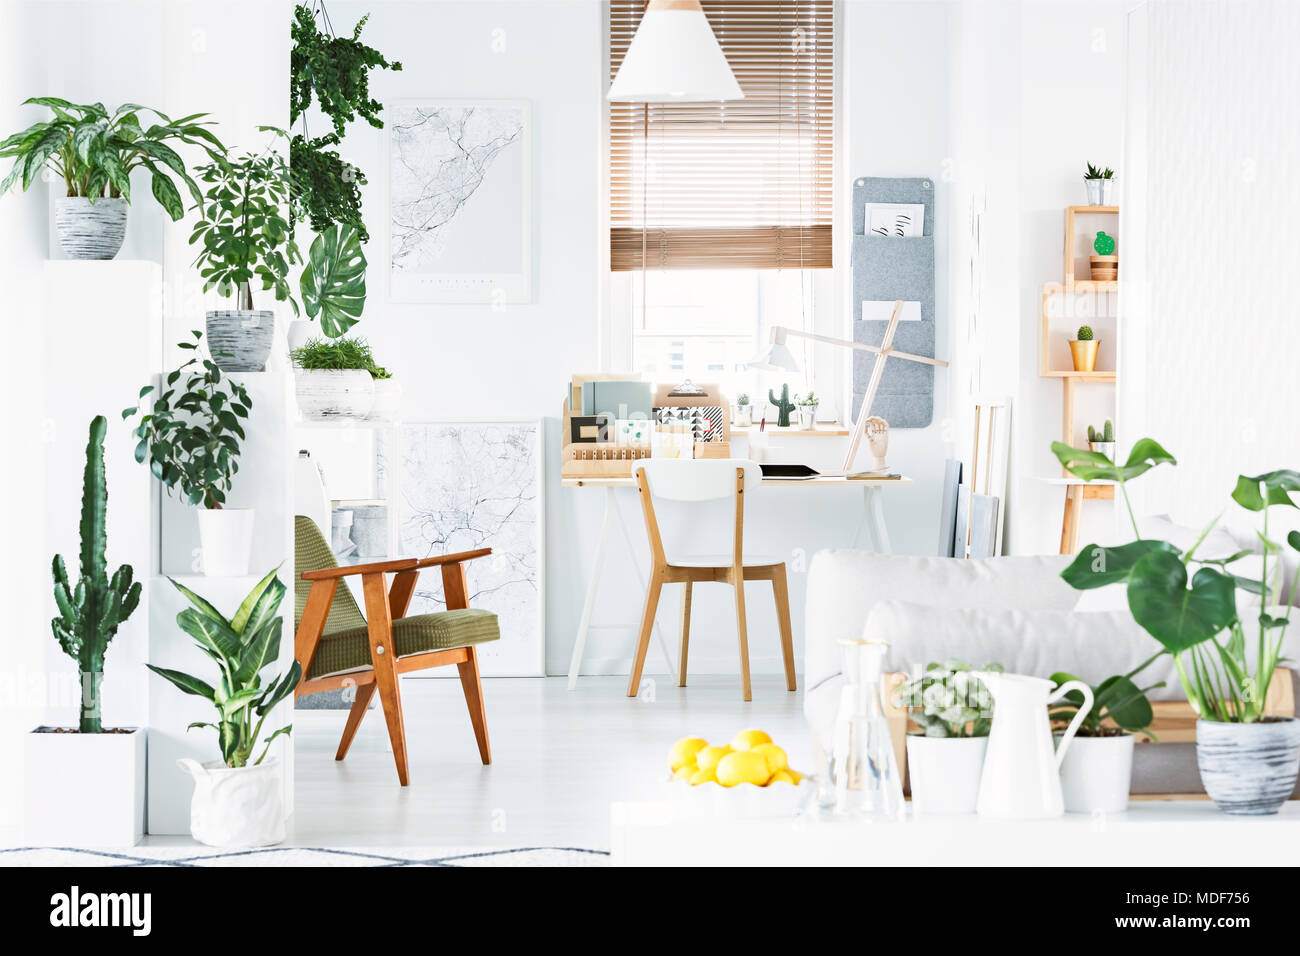 Botanical home office interior with white walls, wooden chair and lemons in a bowl - Stock Image